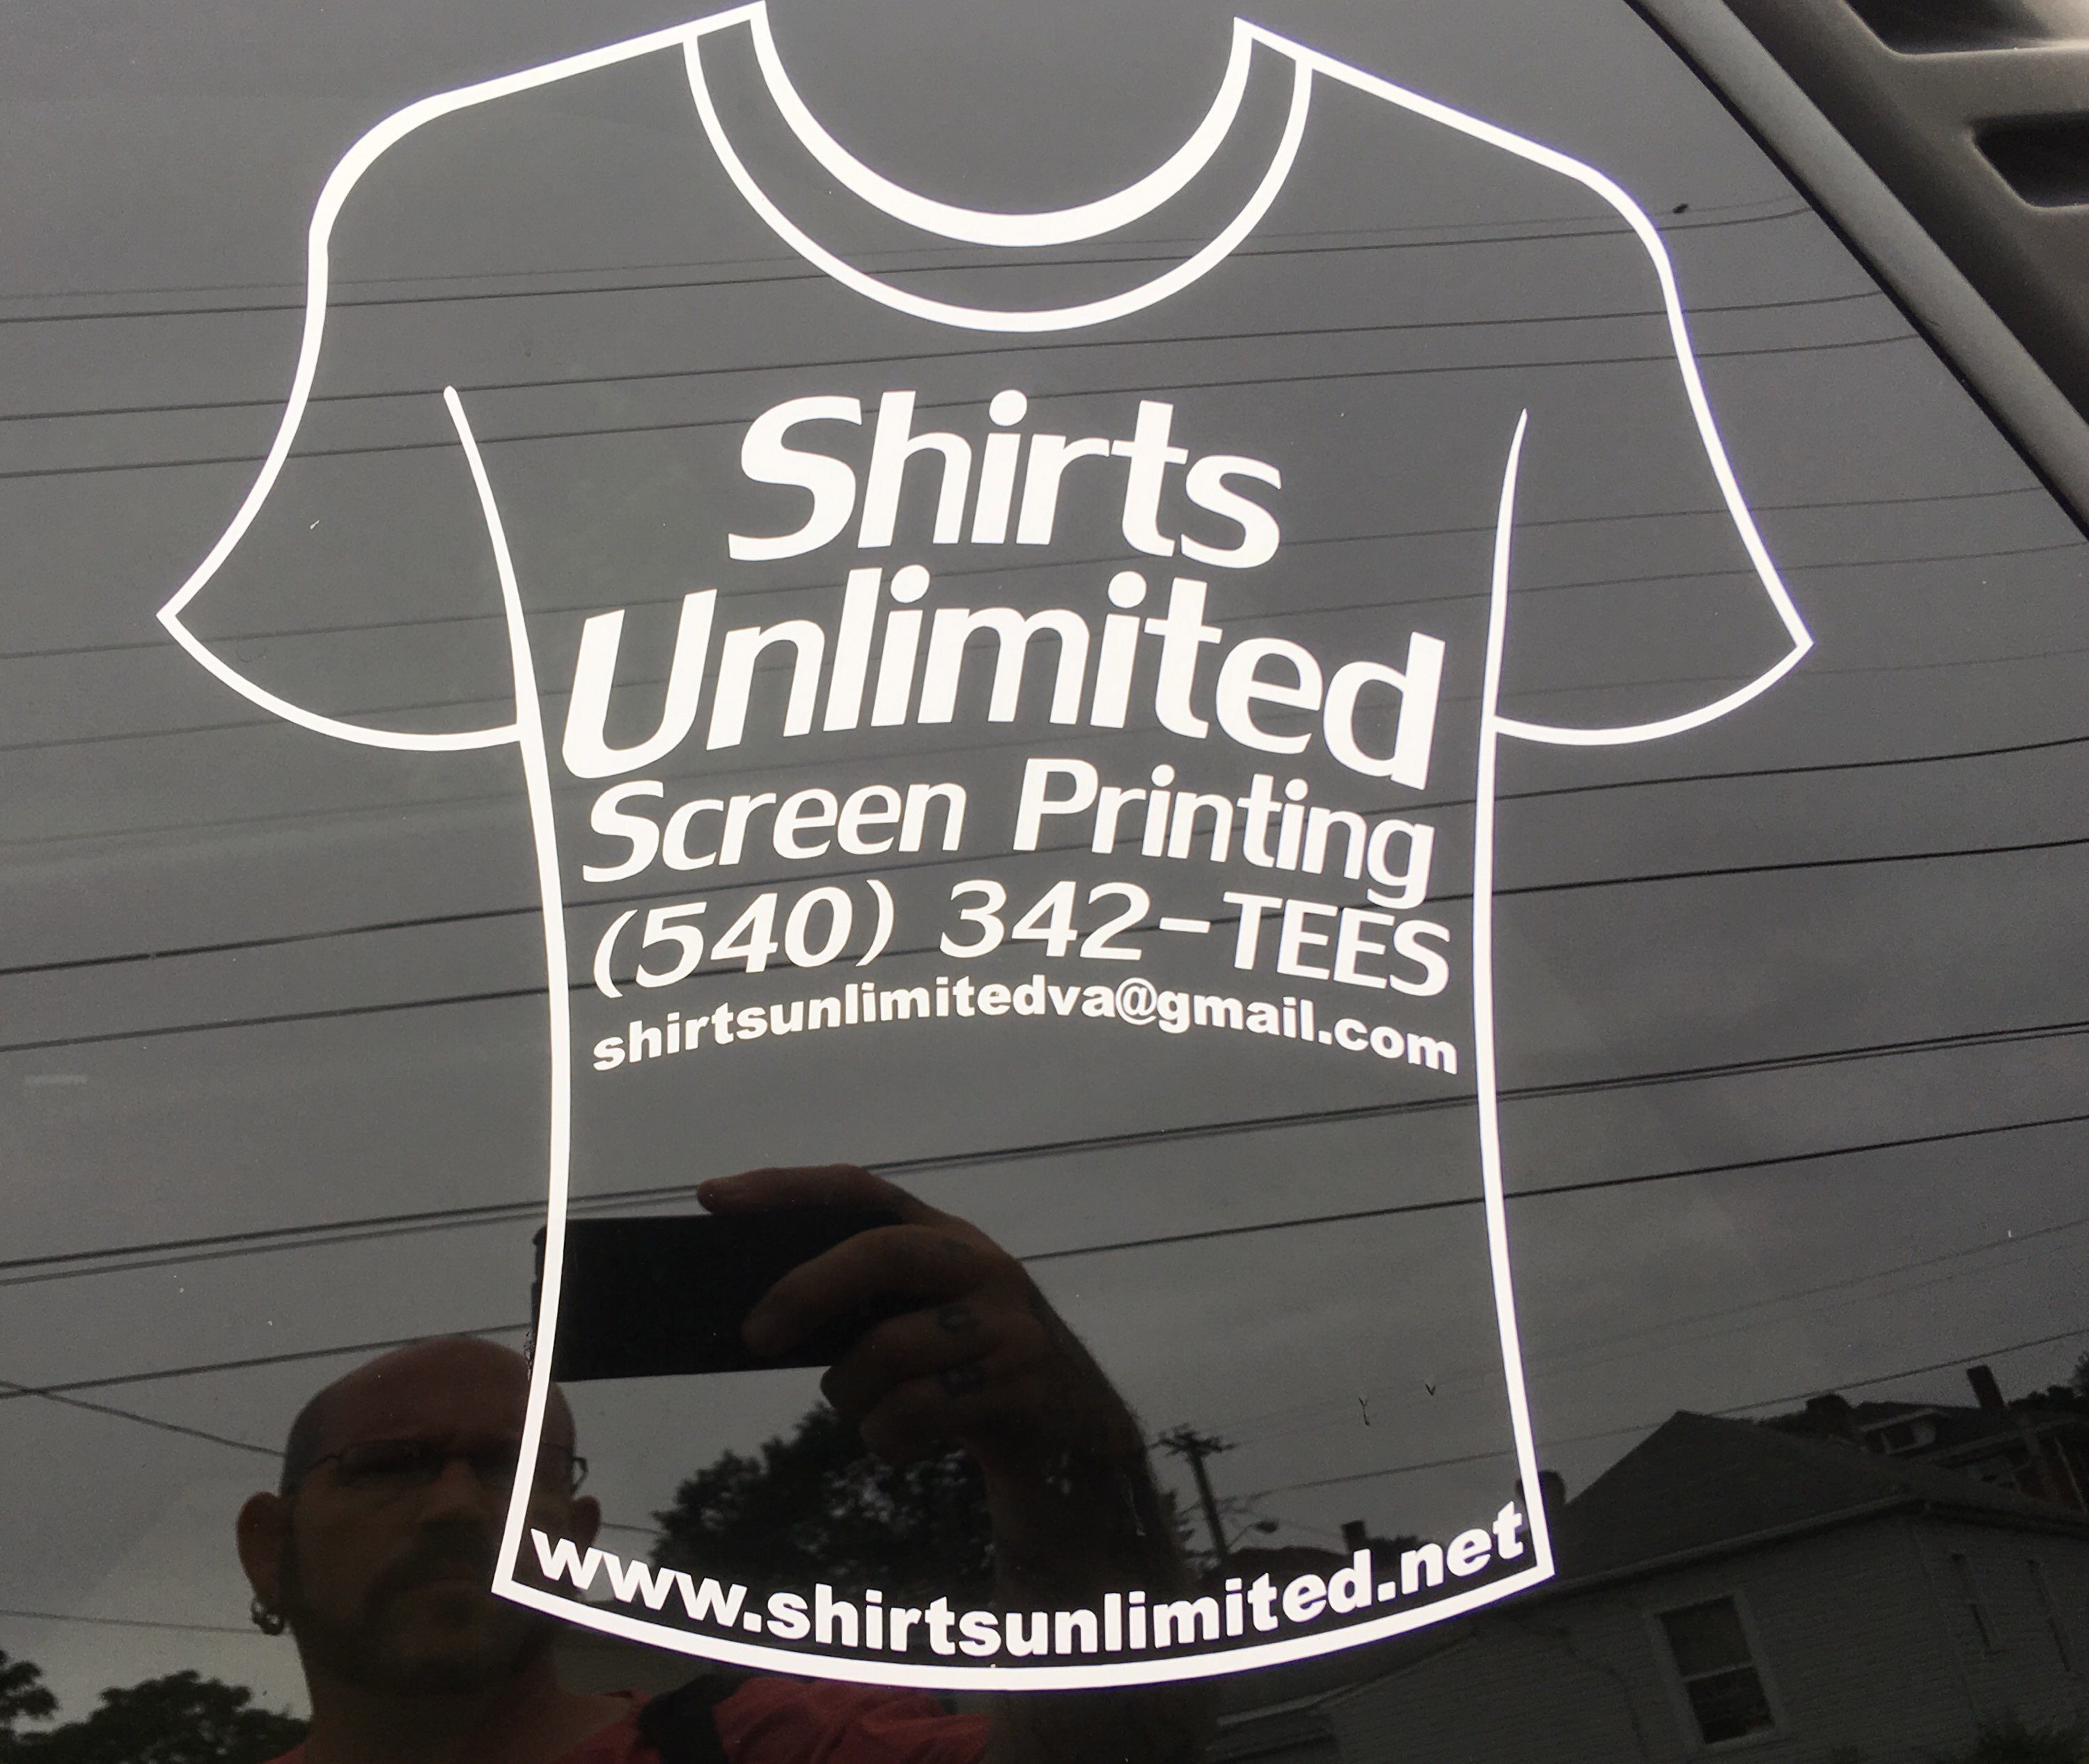 Shirts Unlimited Screen Printing - Roanoke, Virginia 24013